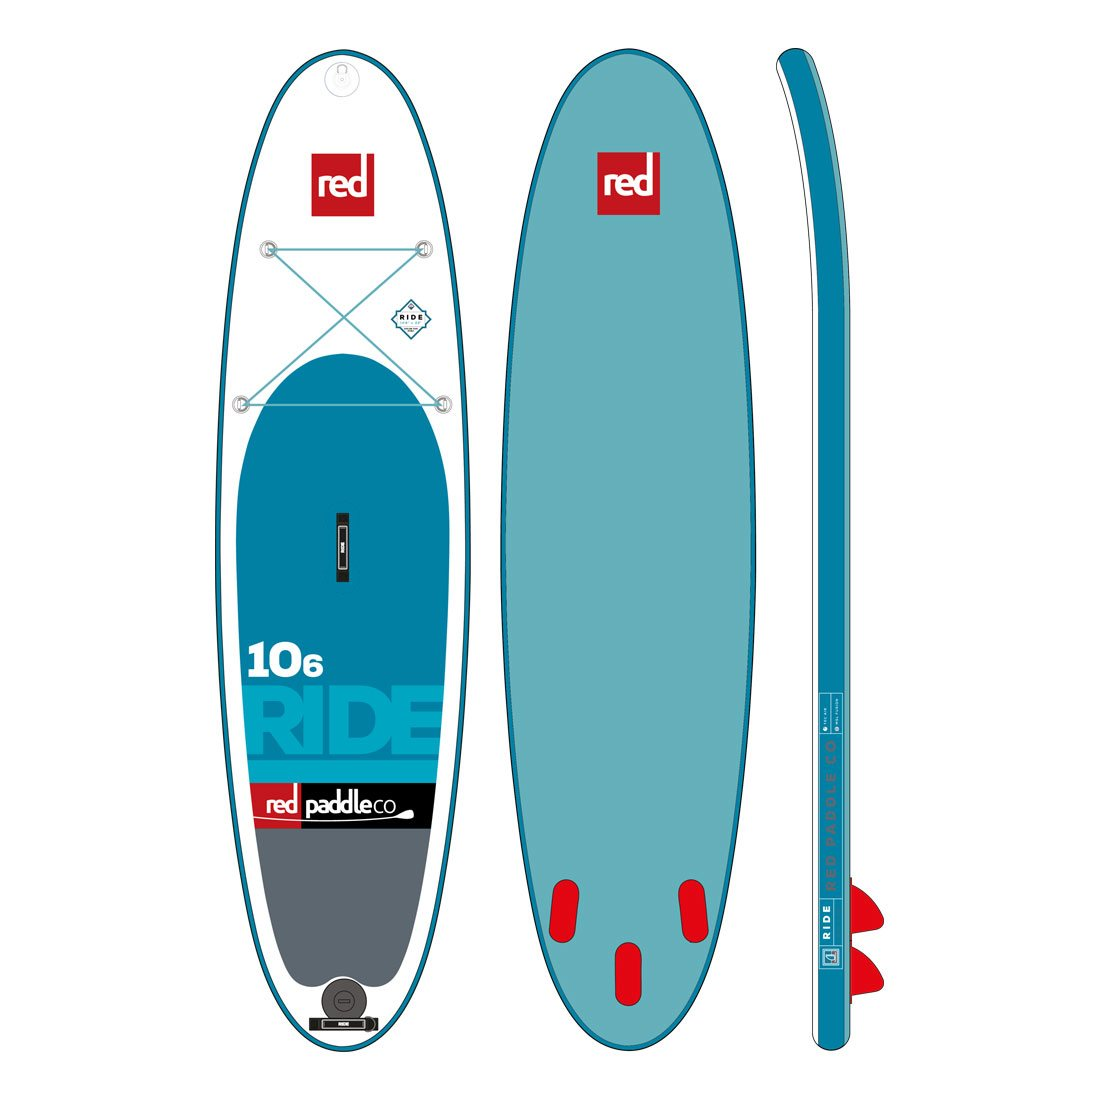 "Nafukovací SUP RED 10'6"" RIDE model 2017"